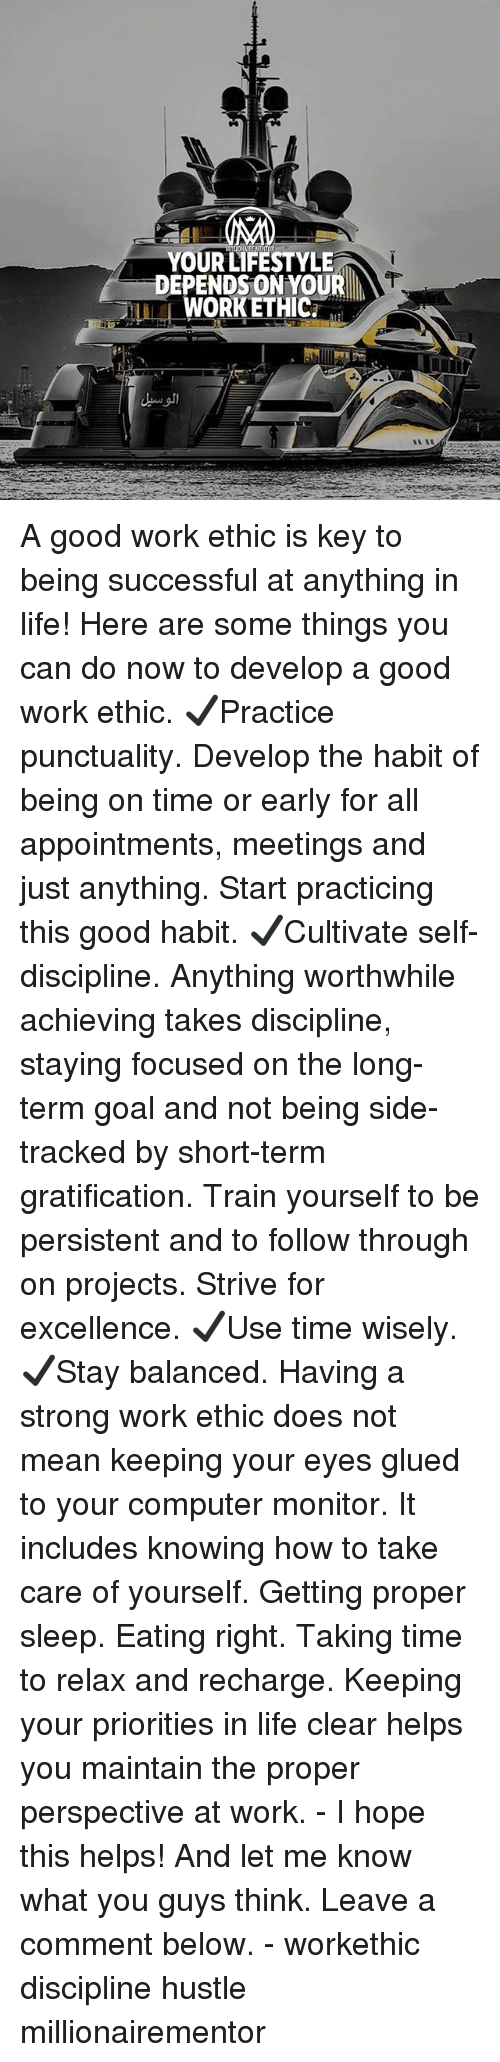 Gratification: YOUR LIFESTYLE  DEPENDSON YOUR  WORKETHIC. A good work ethic is key to being successful at anything in life! Here are some things you can do now to develop a good work ethic. ✔️Practice punctuality. Develop the habit of being on time or early for all appointments, meetings and just anything. Start practicing this good habit. ✔️Cultivate self-discipline. Anything worthwhile achieving takes discipline, staying focused on the long-term goal and not being side-tracked by short-term gratification. Train yourself to be persistent and to follow through on projects. Strive for excellence. ✔️Use time wisely. ✔️Stay balanced. Having a strong work ethic does not mean keeping your eyes glued to your computer monitor. It includes knowing how to take care of yourself. Getting proper sleep. Eating right. Taking time to relax and recharge. Keeping your priorities in life clear helps you maintain the proper perspective at work. - I hope this helps! And let me know what you guys think. Leave a comment below. - workethic discipline hustle millionairementor